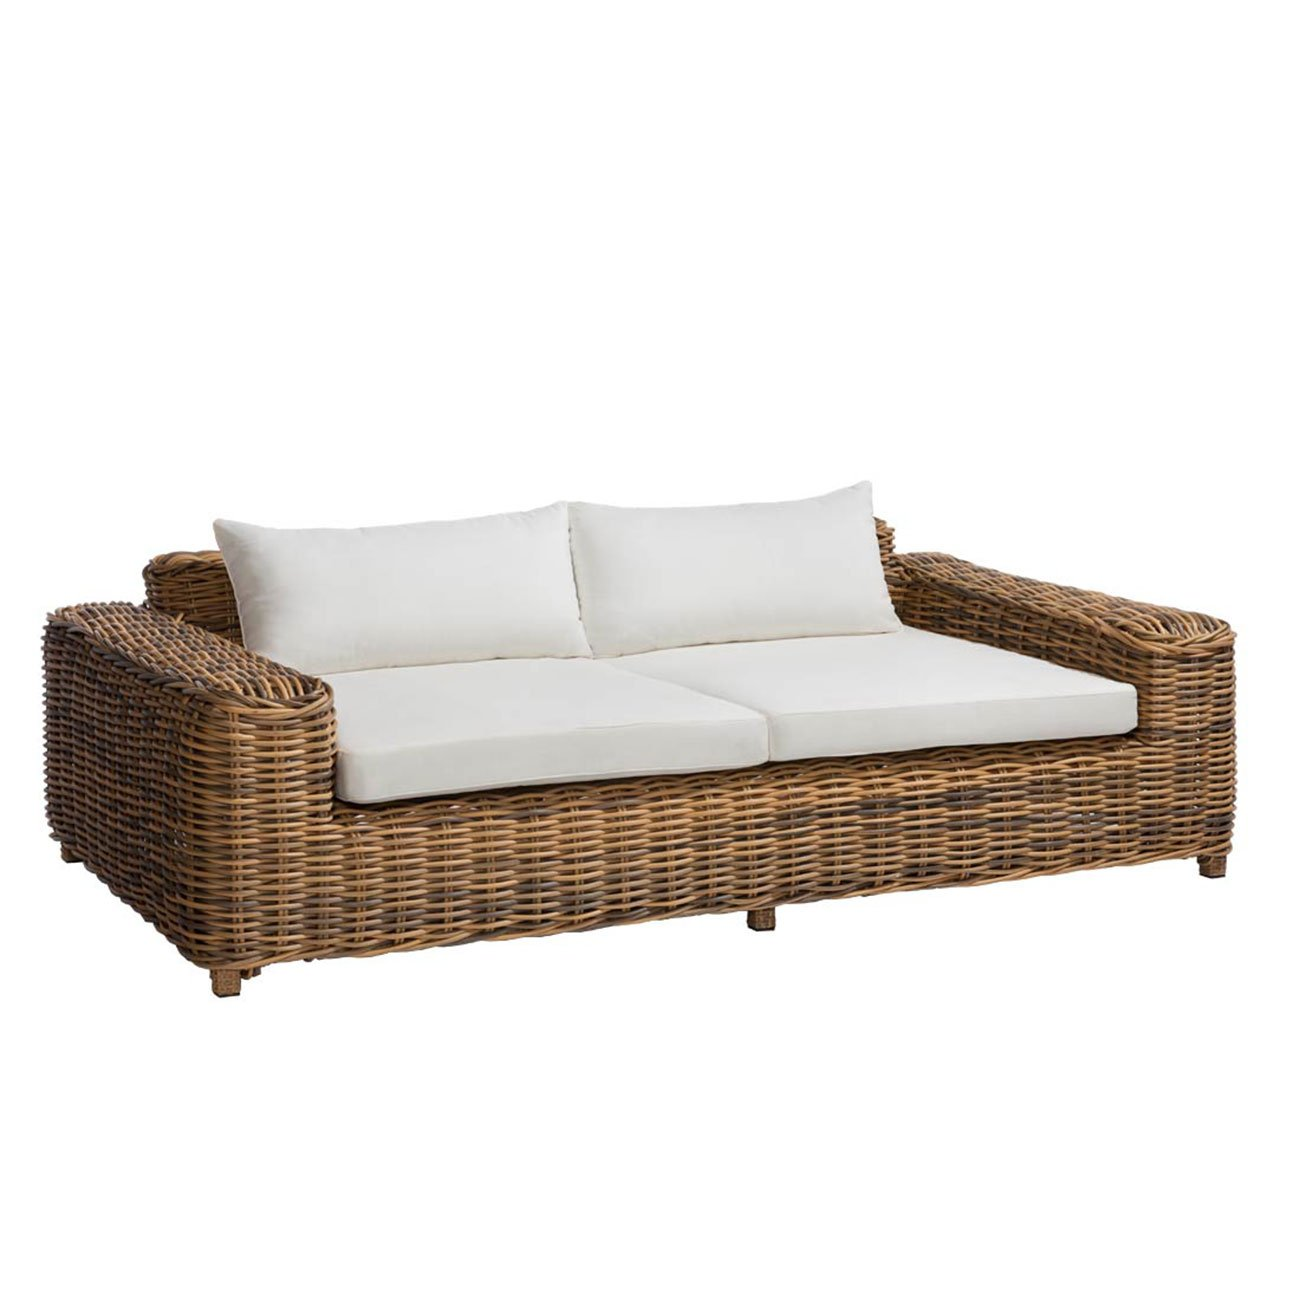 loungesofa garten outliv versailles luxury 2 sitzer gartensofa stahl polyrattan geflecht mix. Black Bedroom Furniture Sets. Home Design Ideas